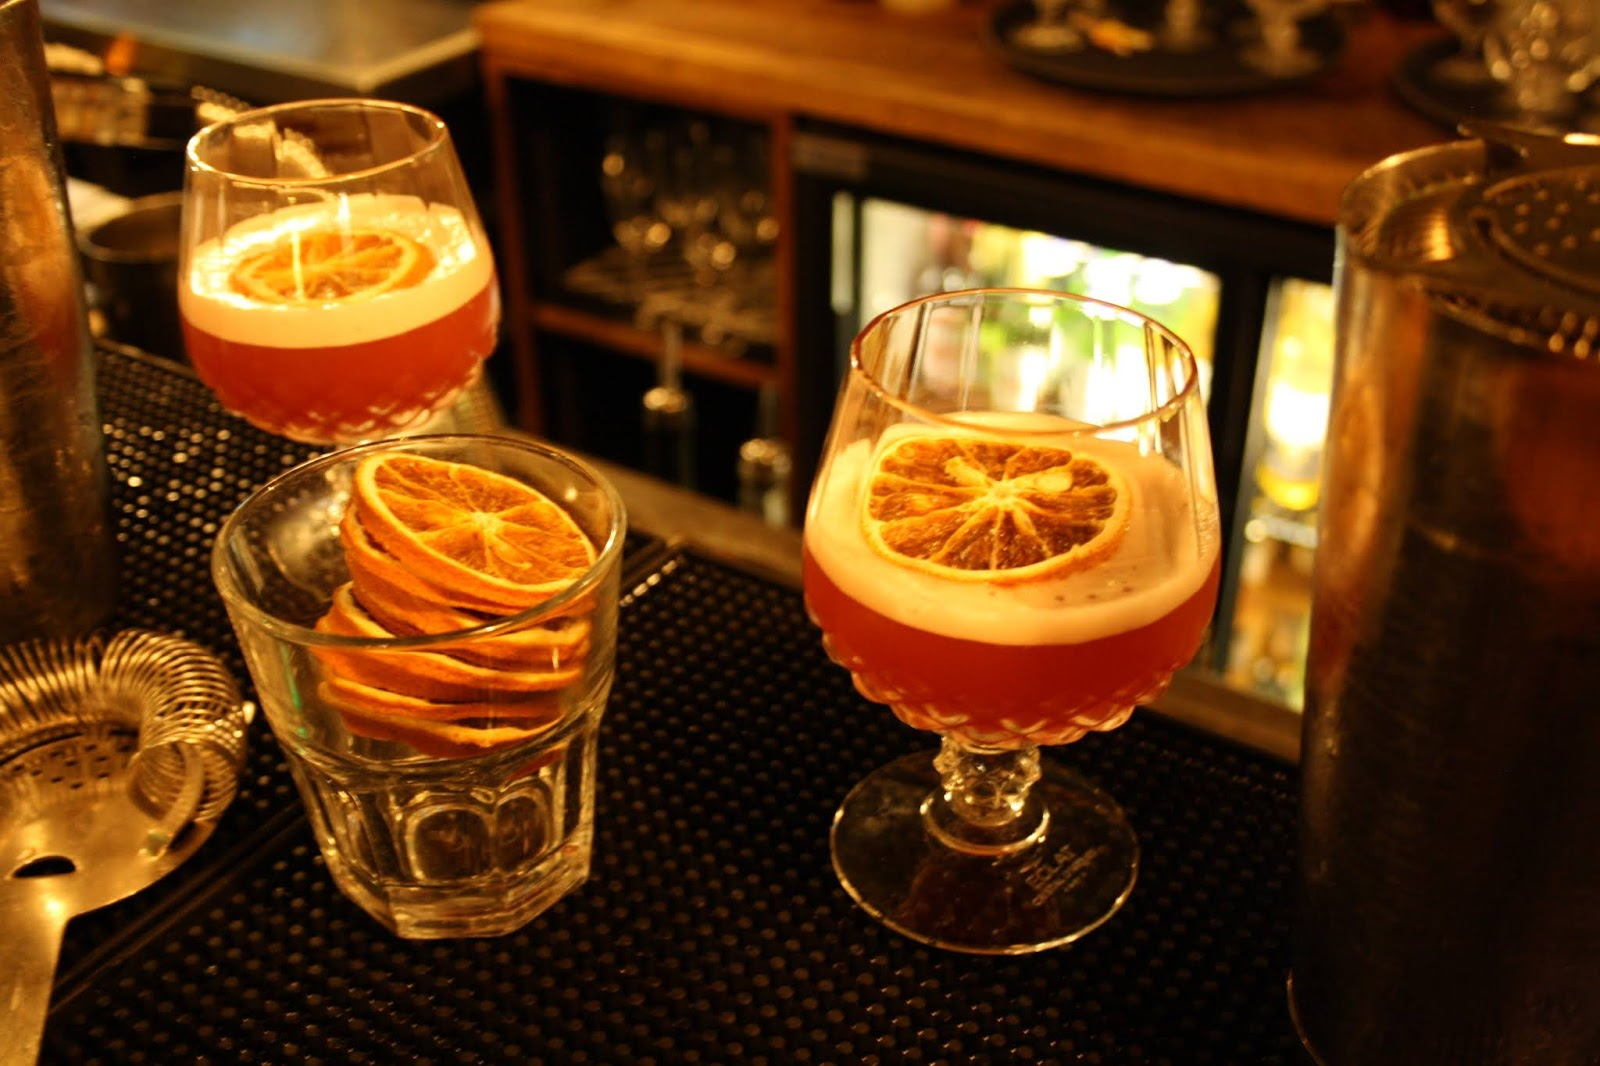 Two Blood Orange and Whiskey Sours cocktails, garnished with dehydrated orange pieces, sitting on the bar in the Cosy Club